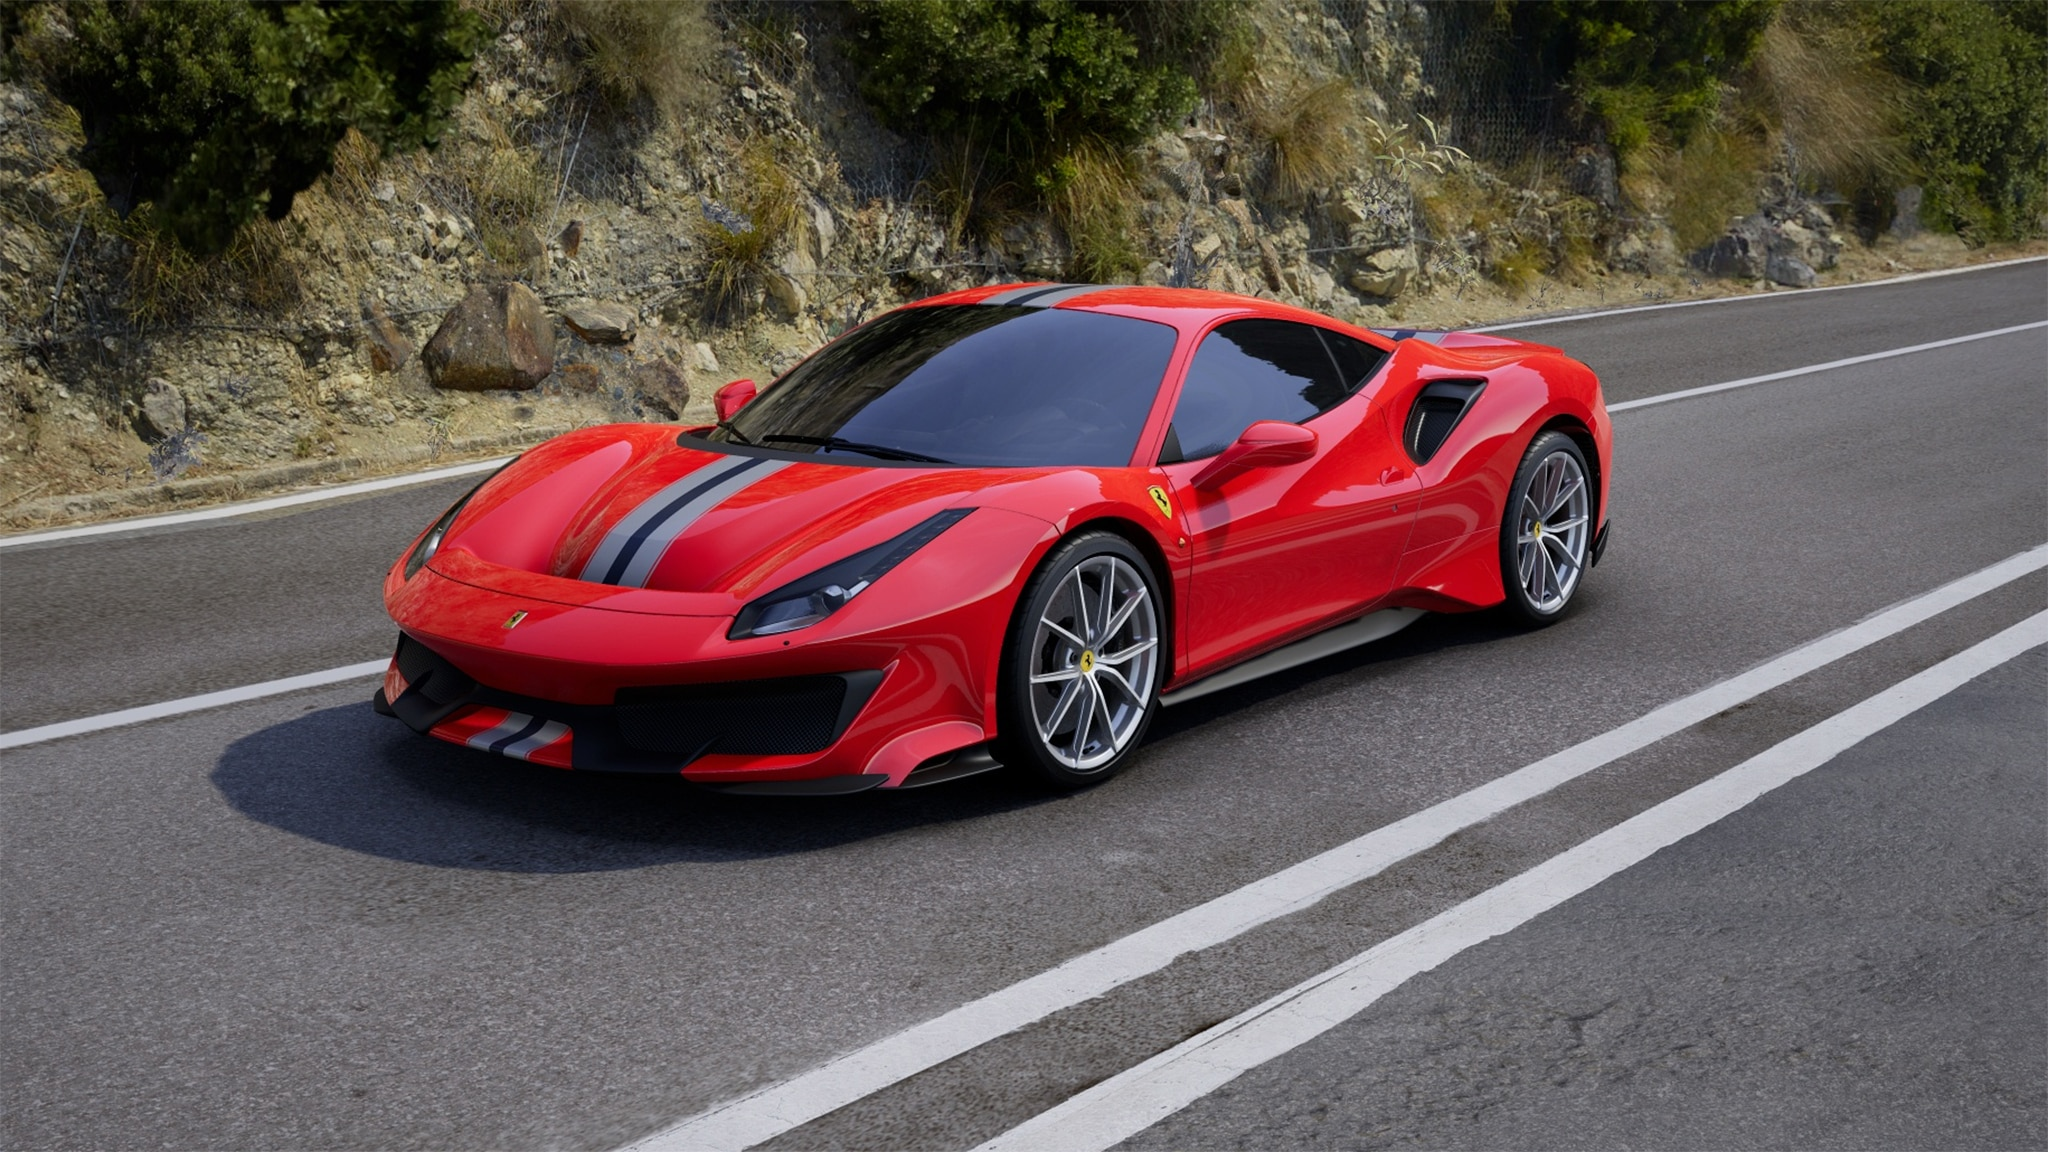 Ferrari 488 Pista How I D Spec It A Minimalist Pista Is The Perfect Pista Car In My Life